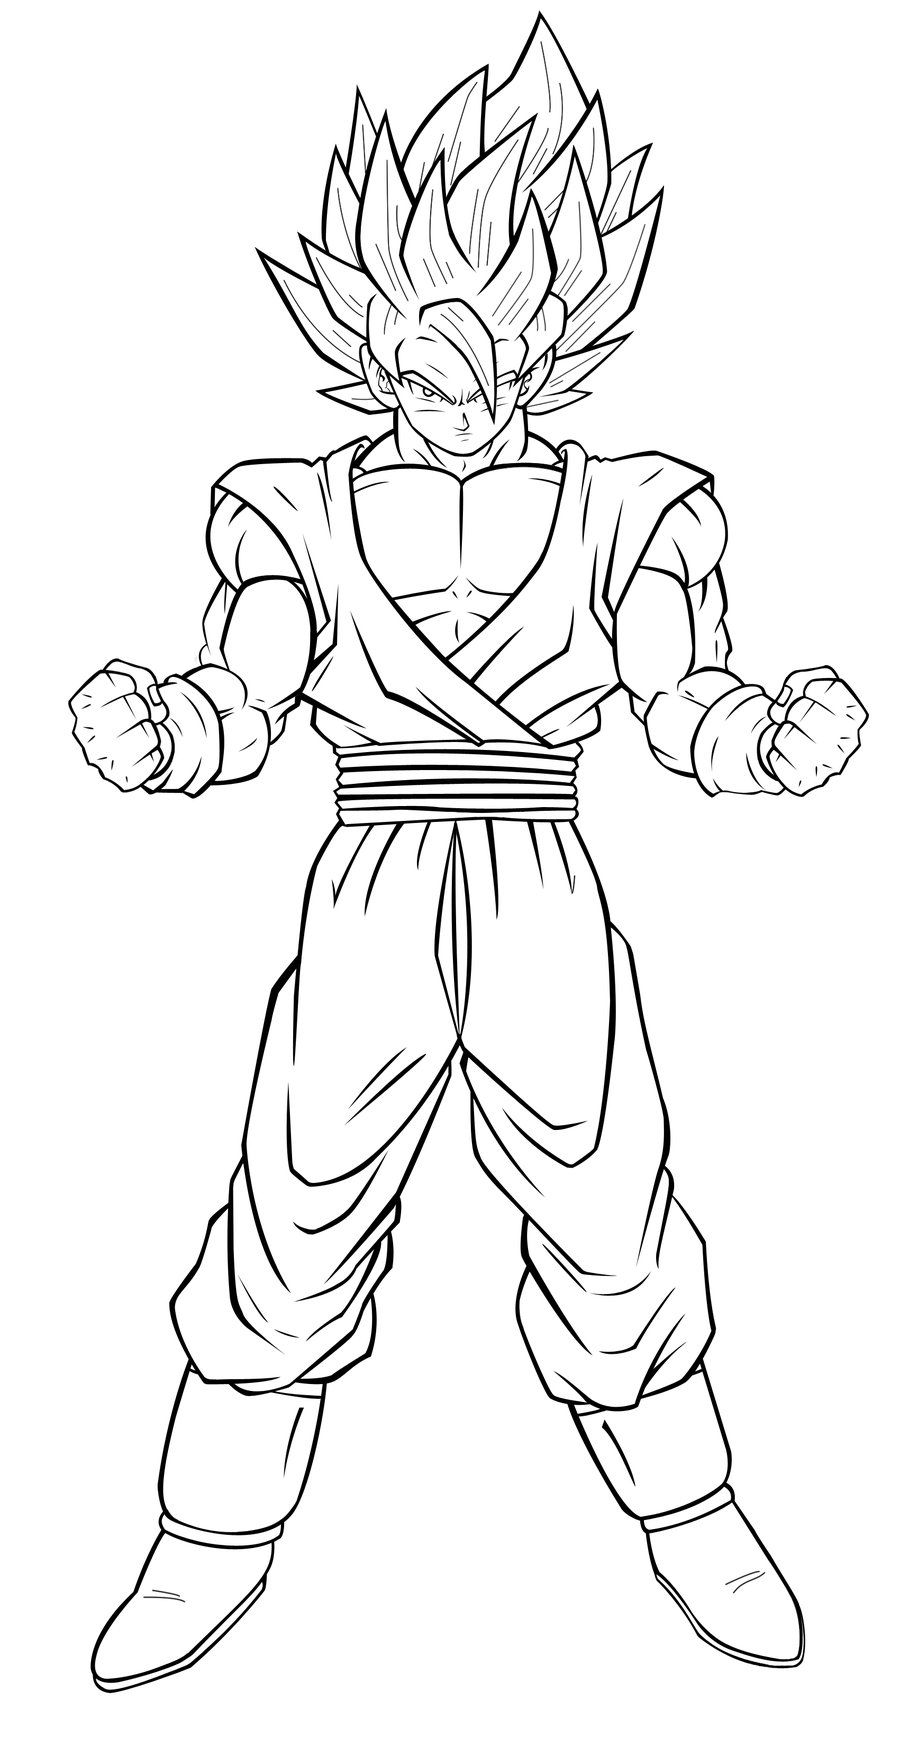 Goku Super Saiyan 4 Coloring Pages Images Isaiah Birthday Dragon